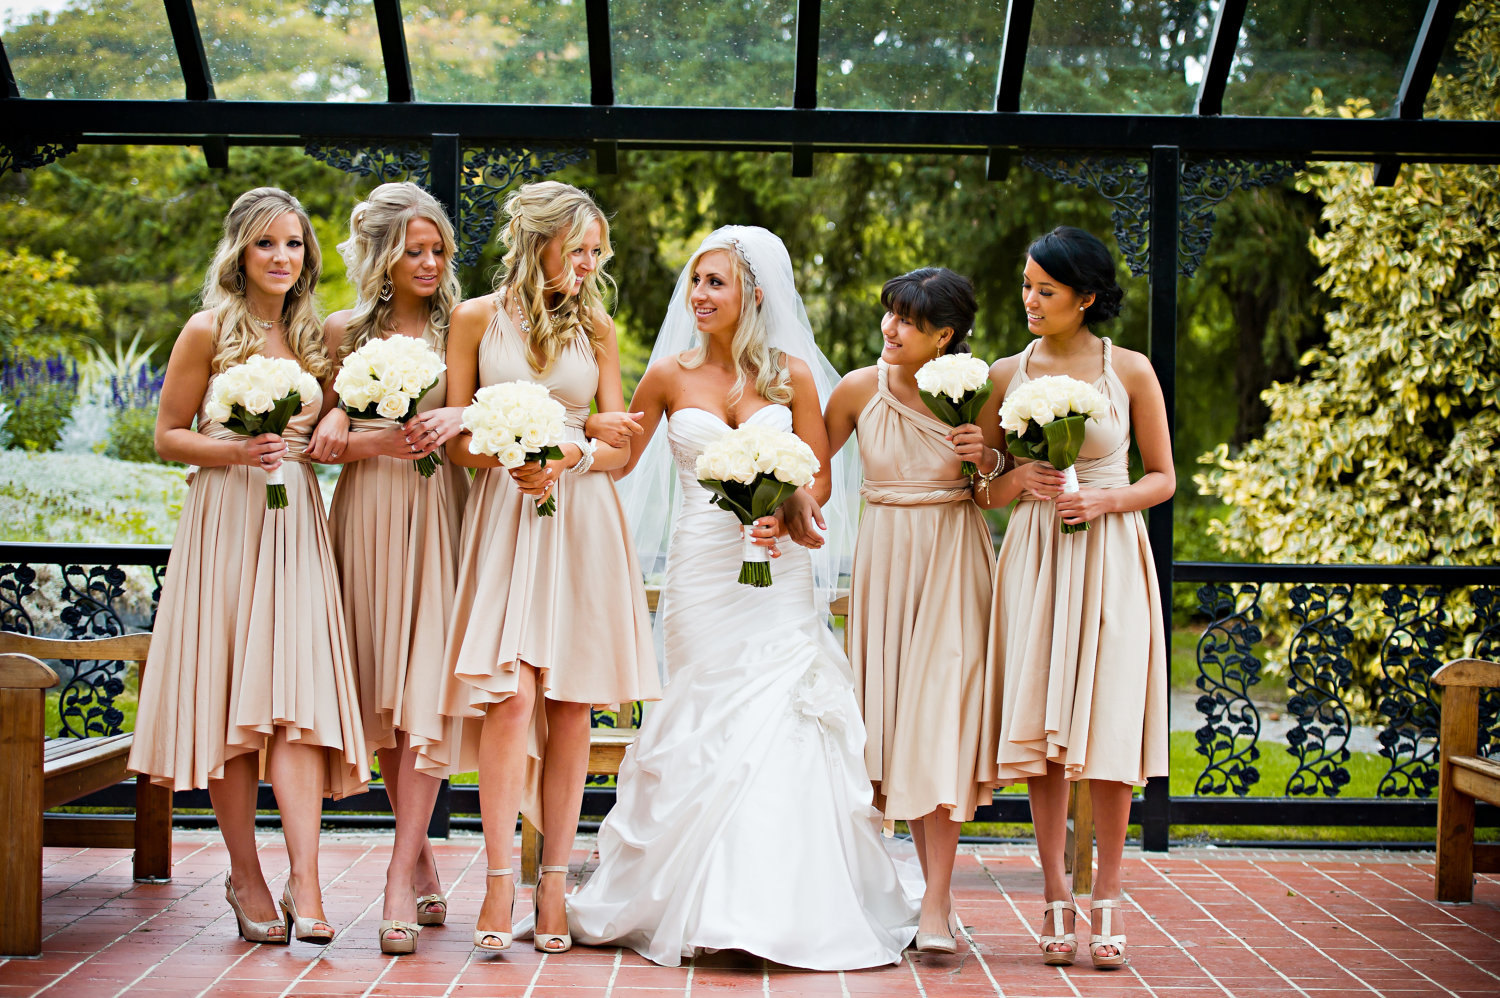 Convertible bridesmaids dresses bridal party style for Dress for a wedding party